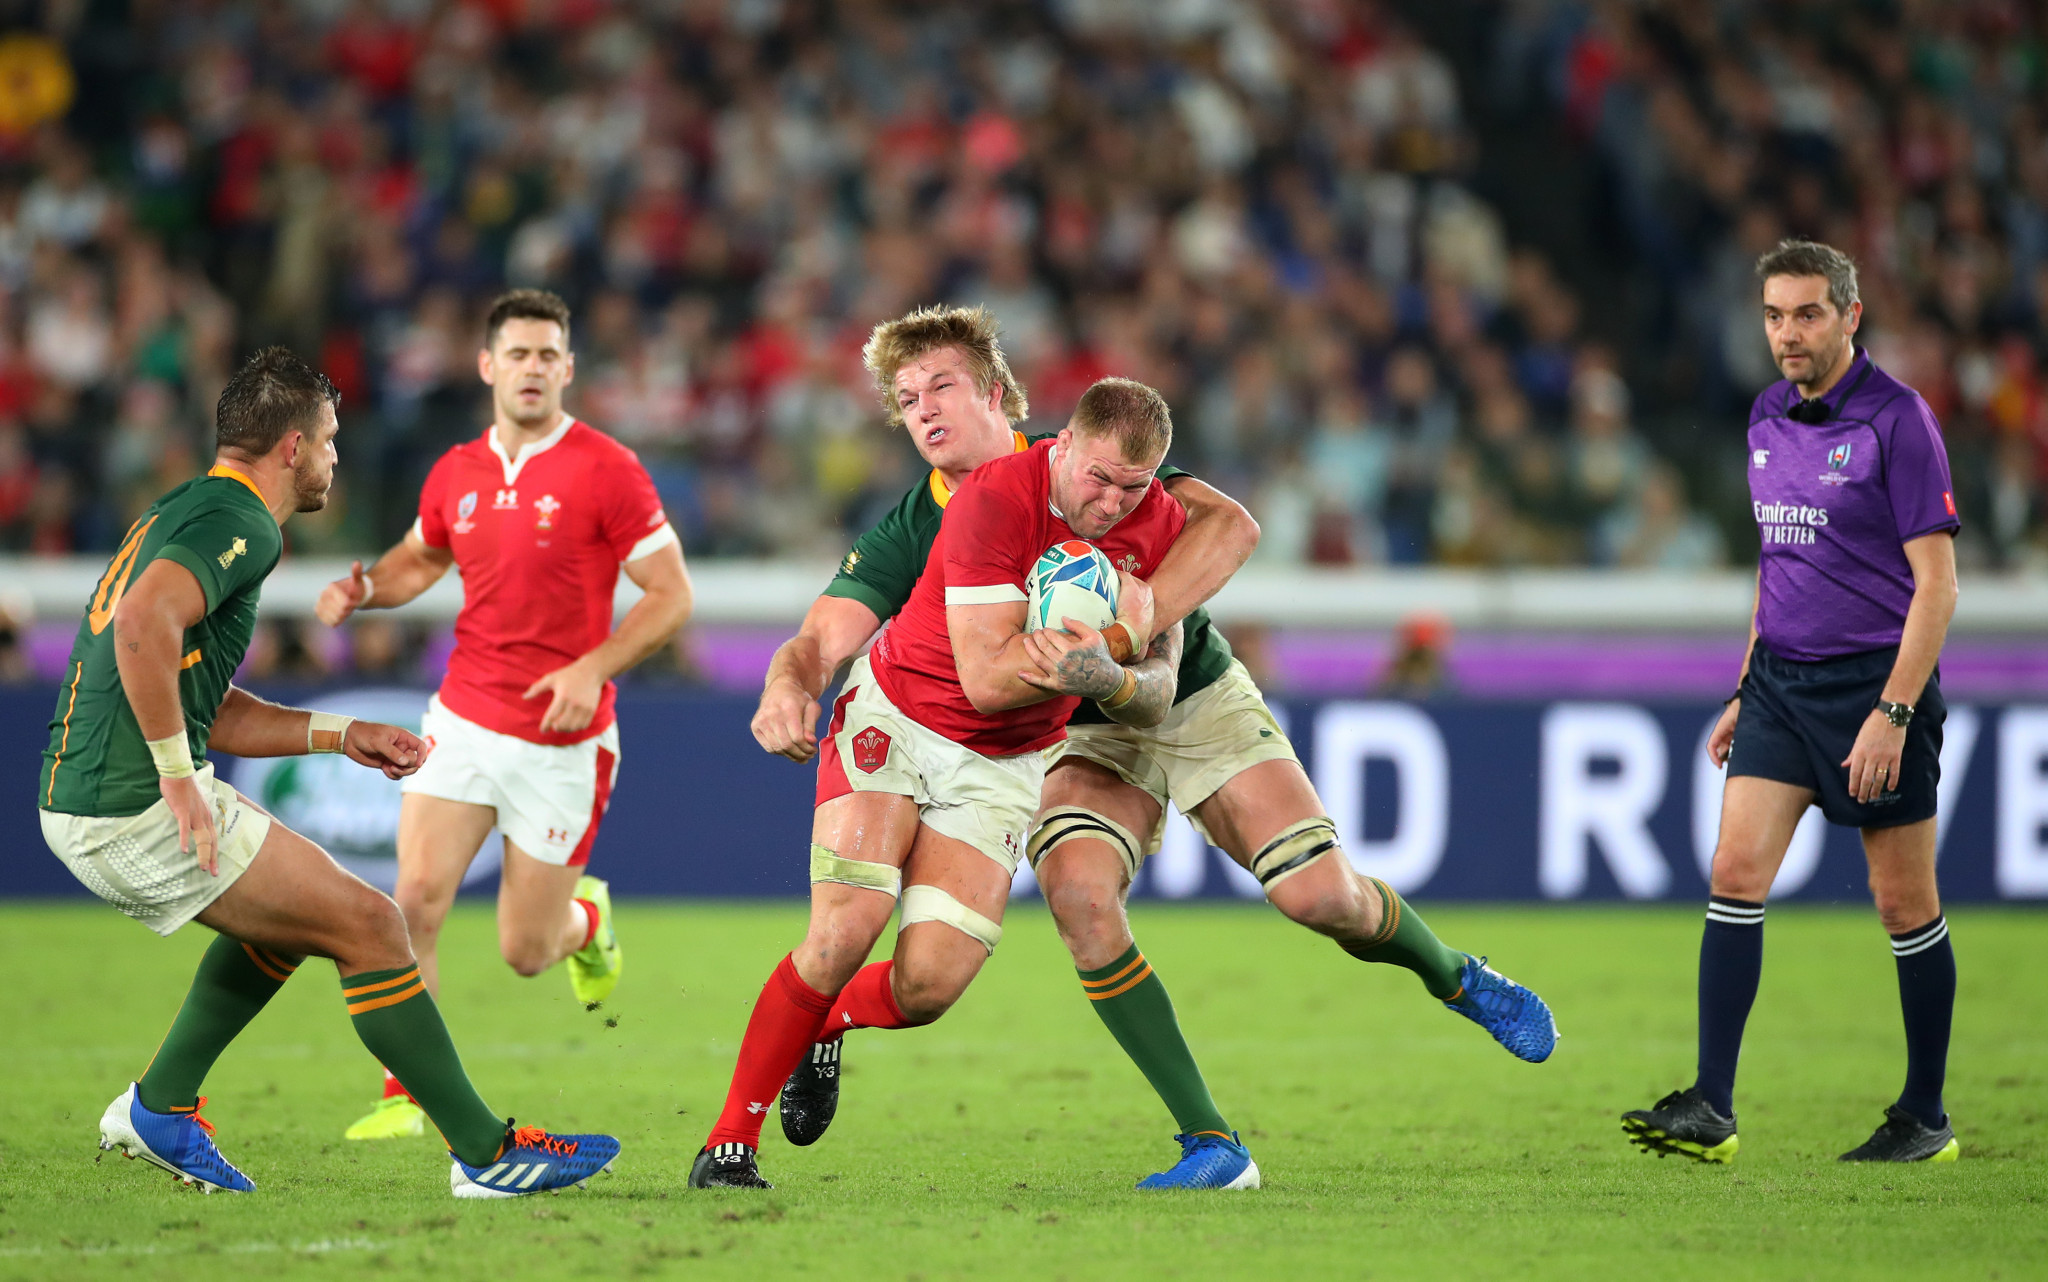 Wales went in search of a late winner but it proved elusive ©Getty Images